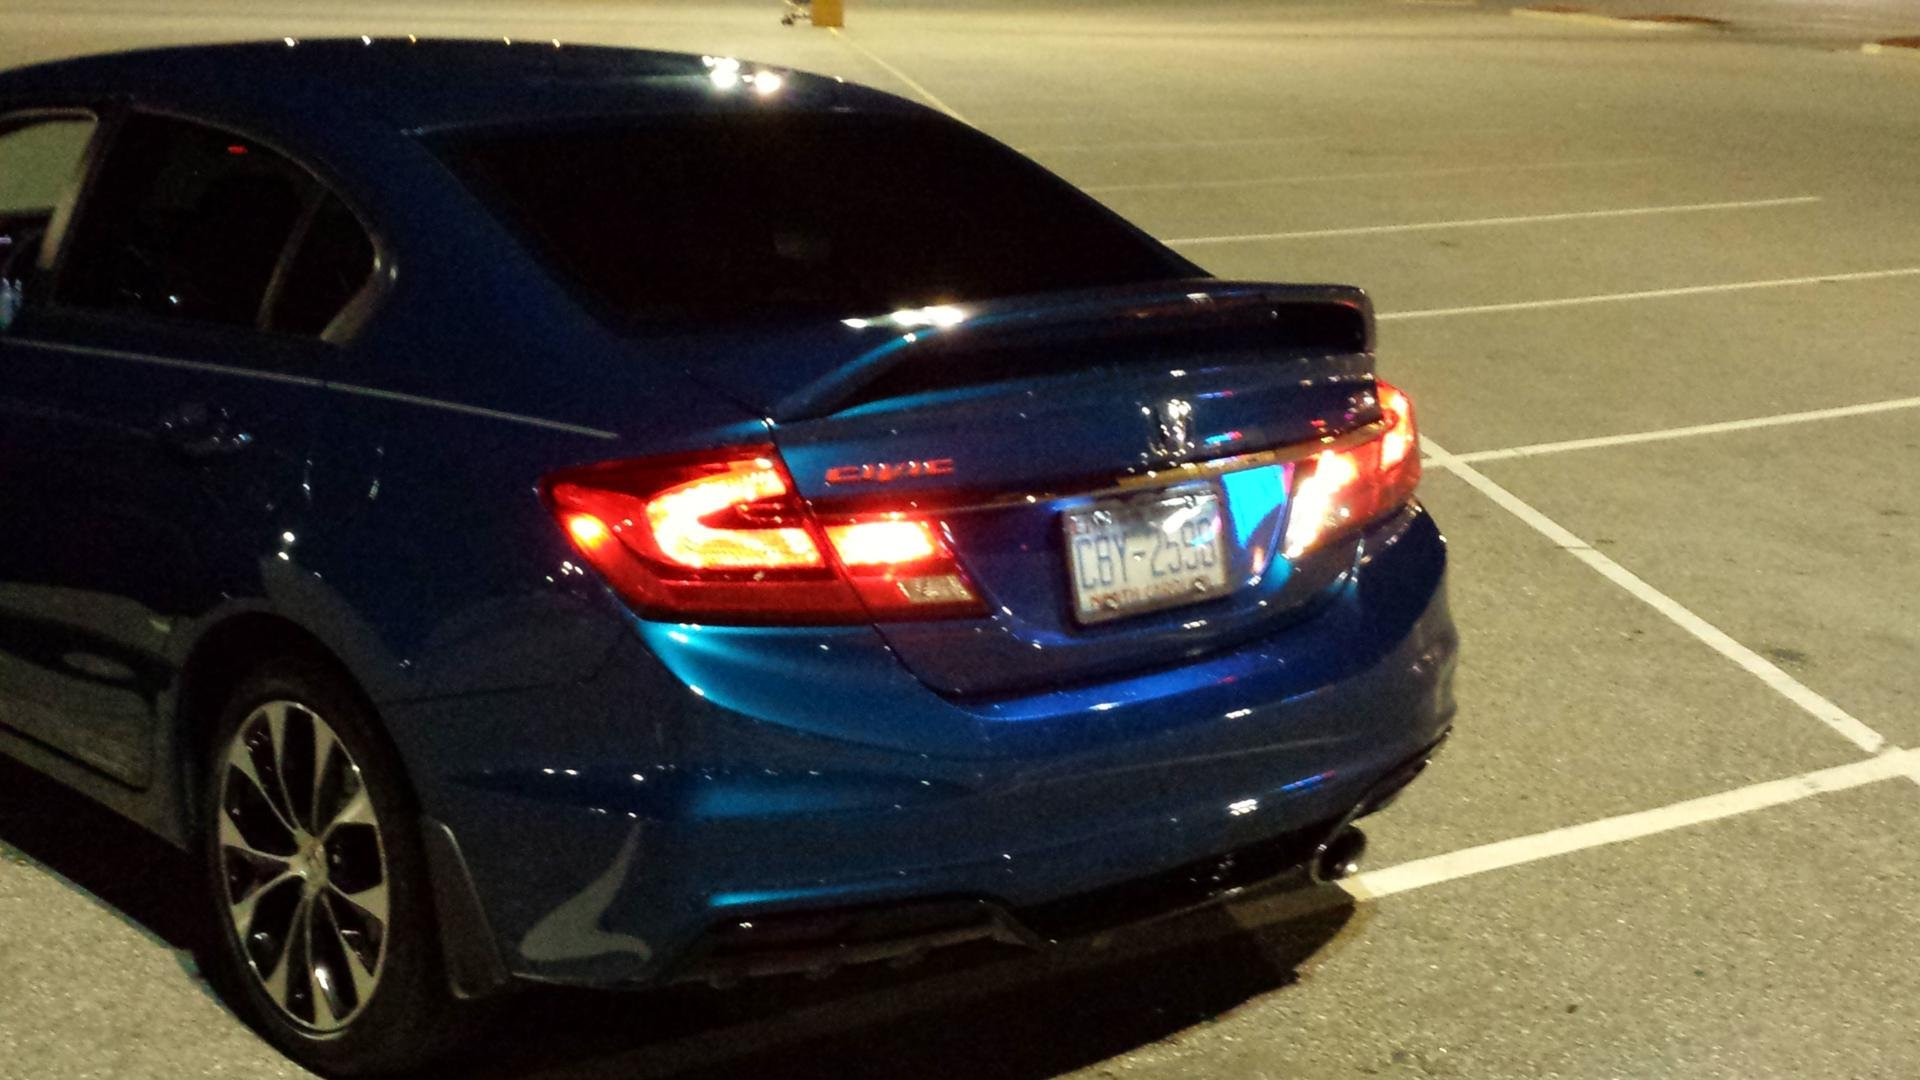 Sedan Red Tail Light Overlays Amp Civic Decal